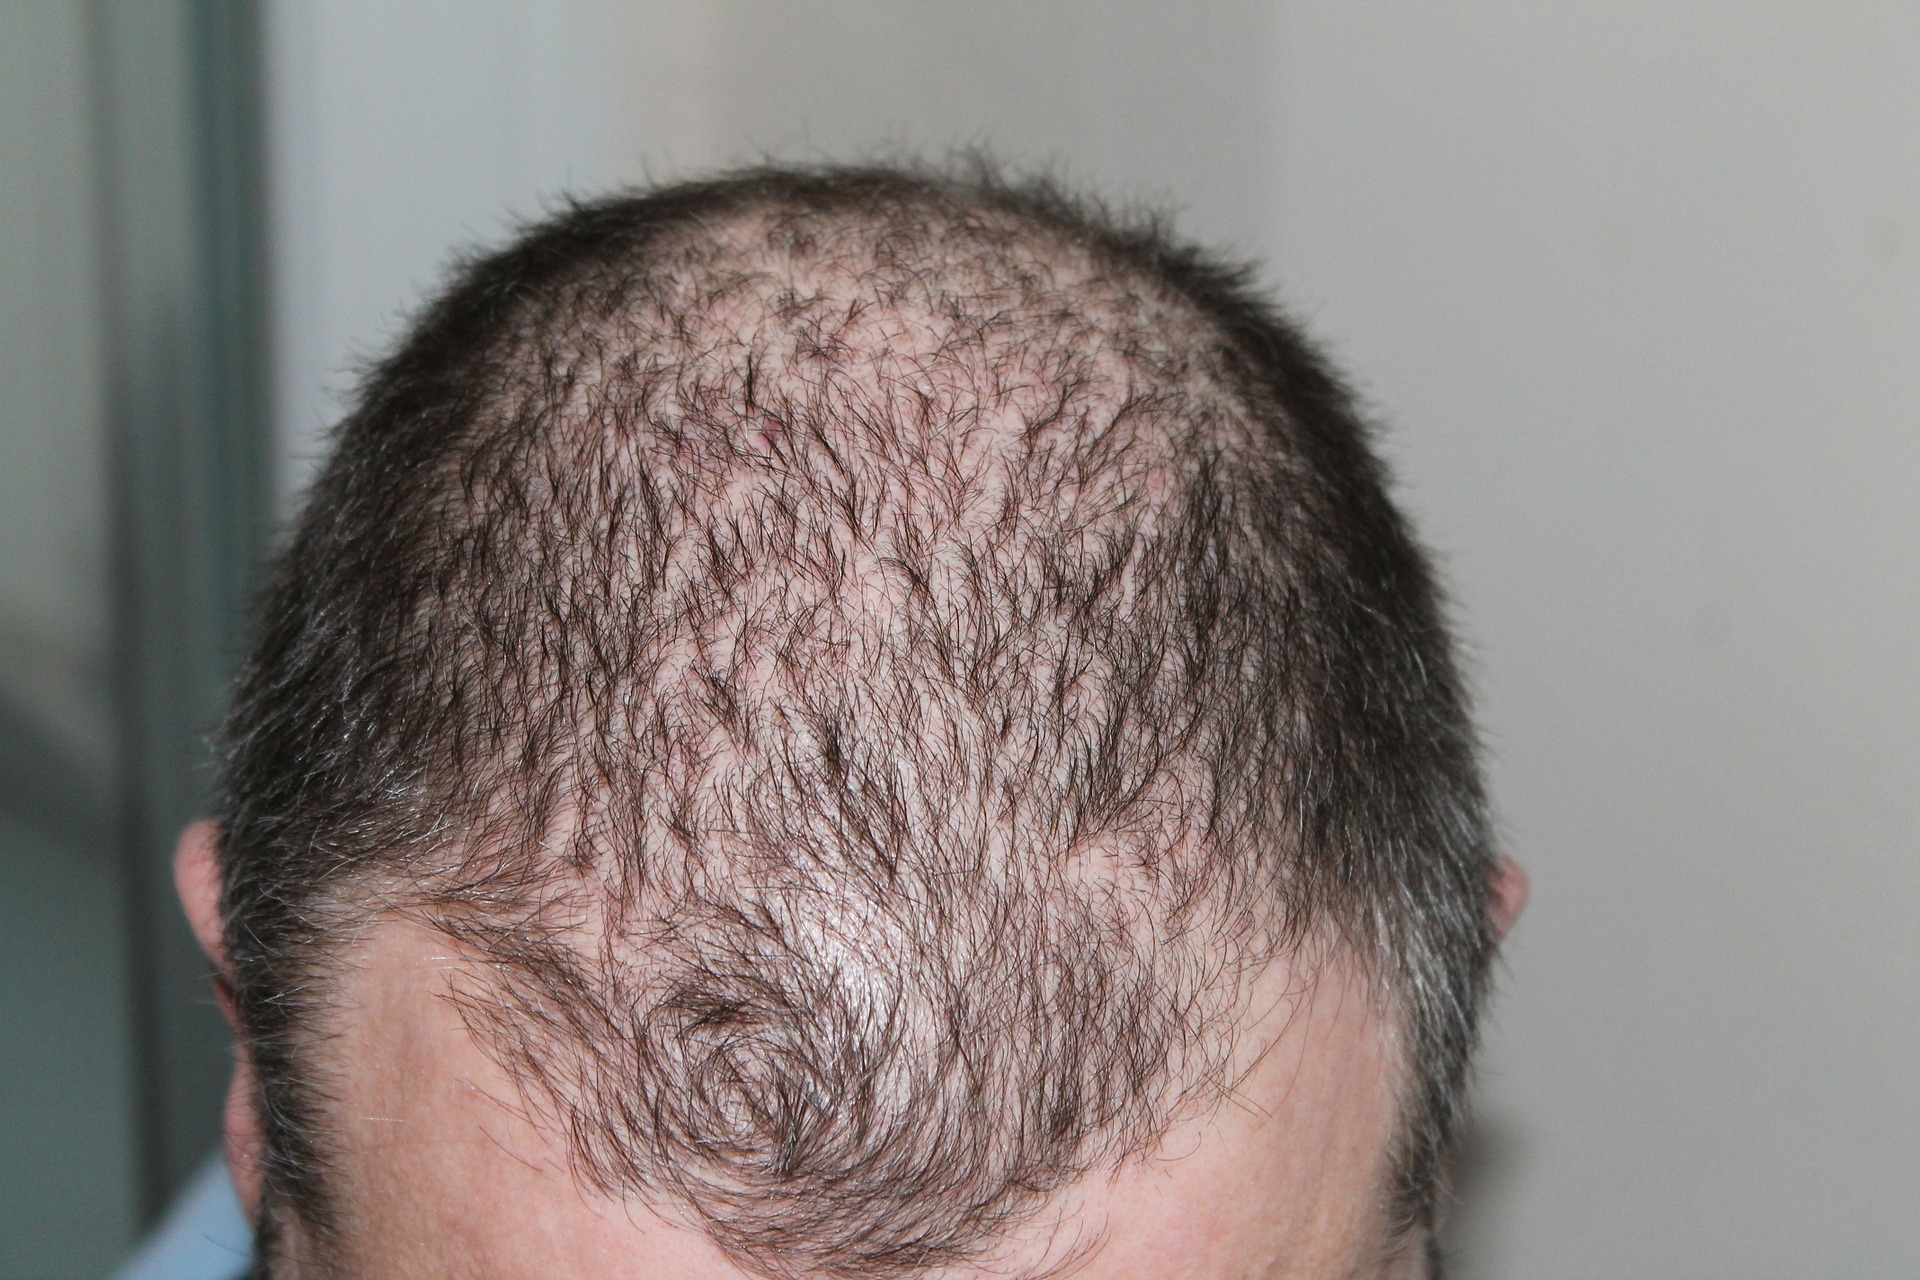 This is a man's thinning hairline.